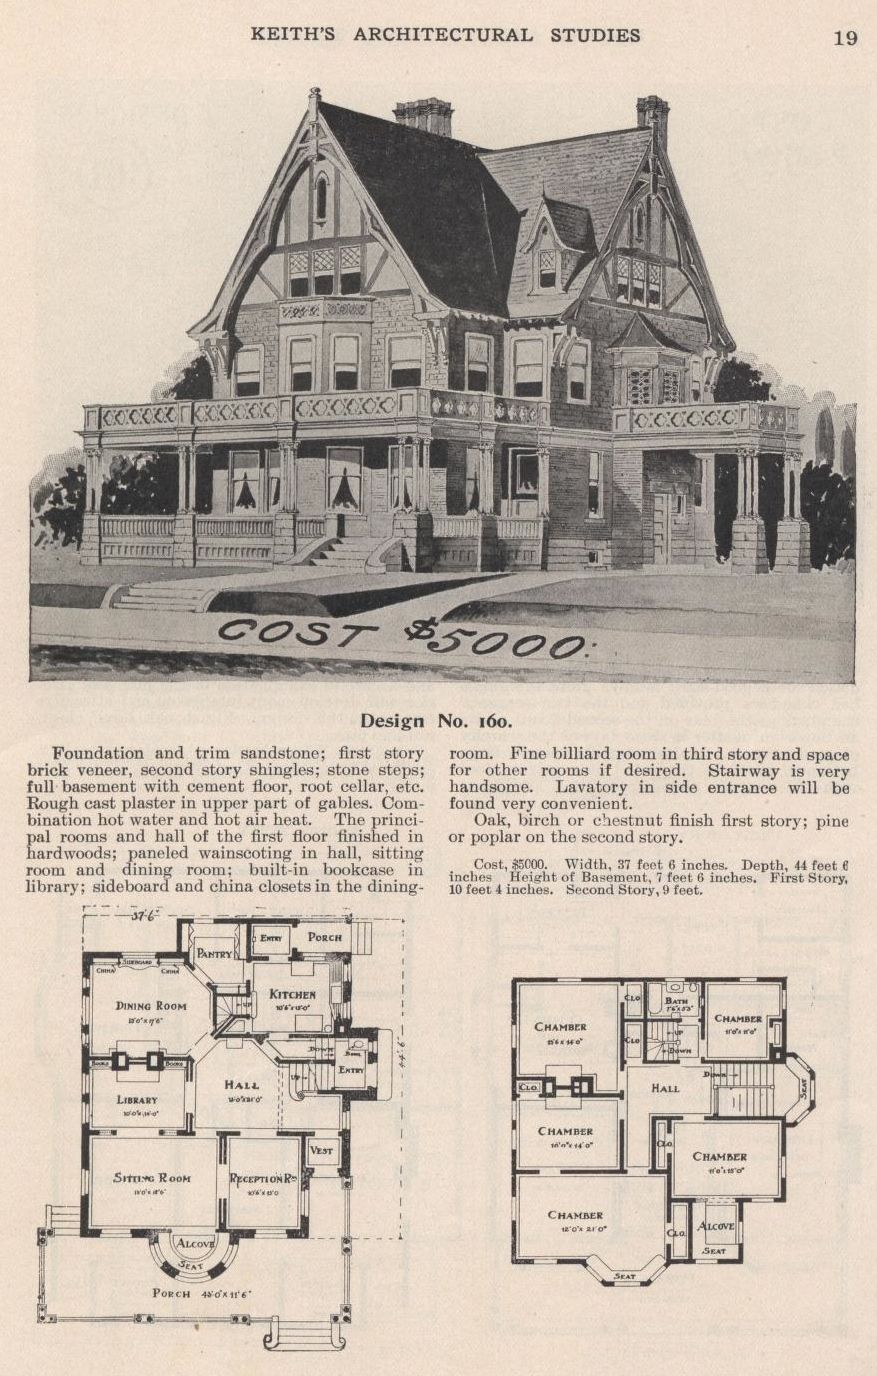 Keithu0027s Architectural Studies, 1905. The Keith Co. From The Association For  Preservation Technology